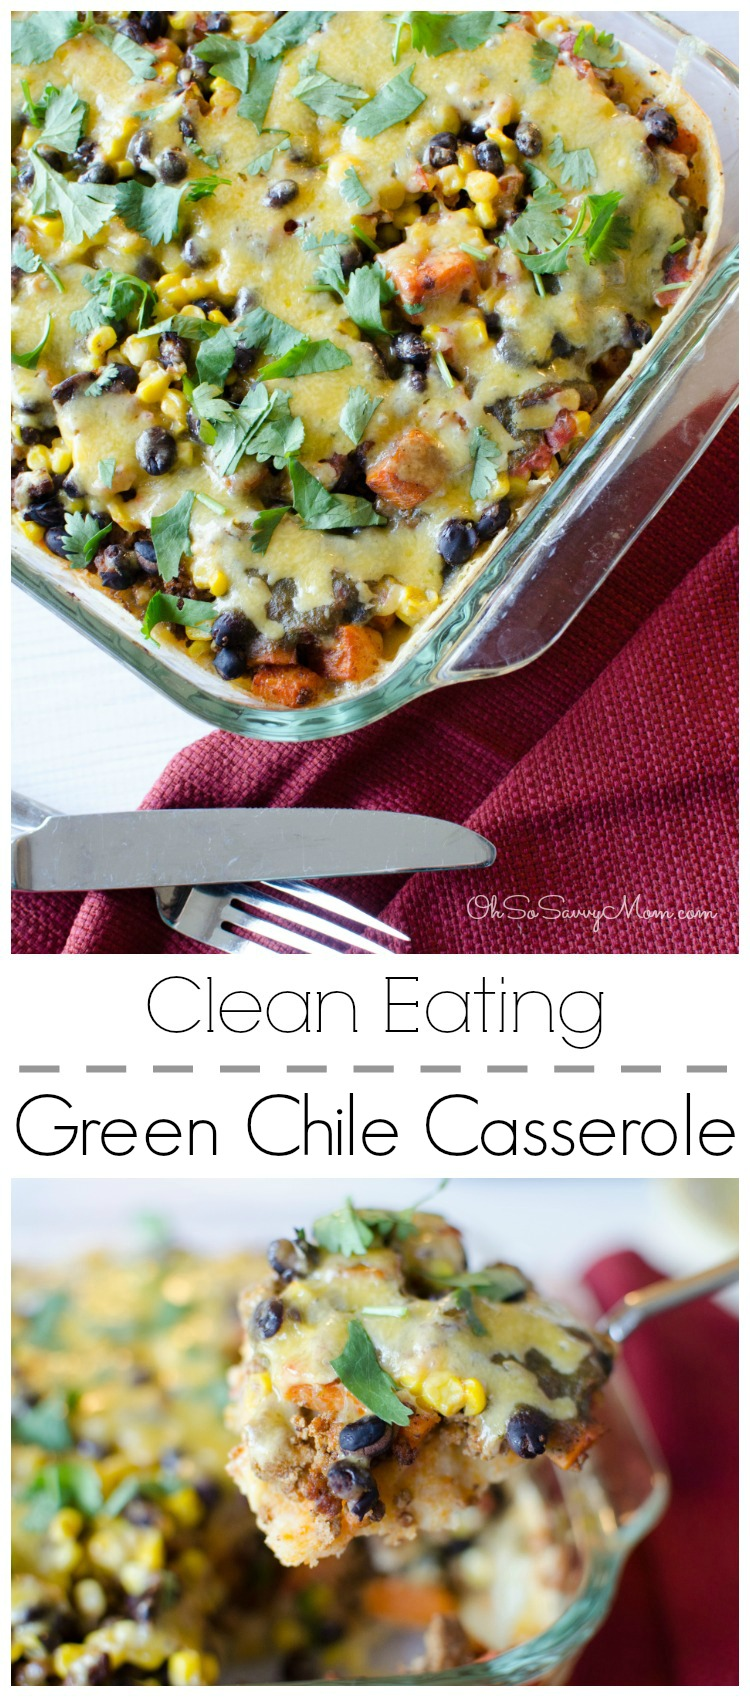 Green Chile Casserole Clean Eating Recipe